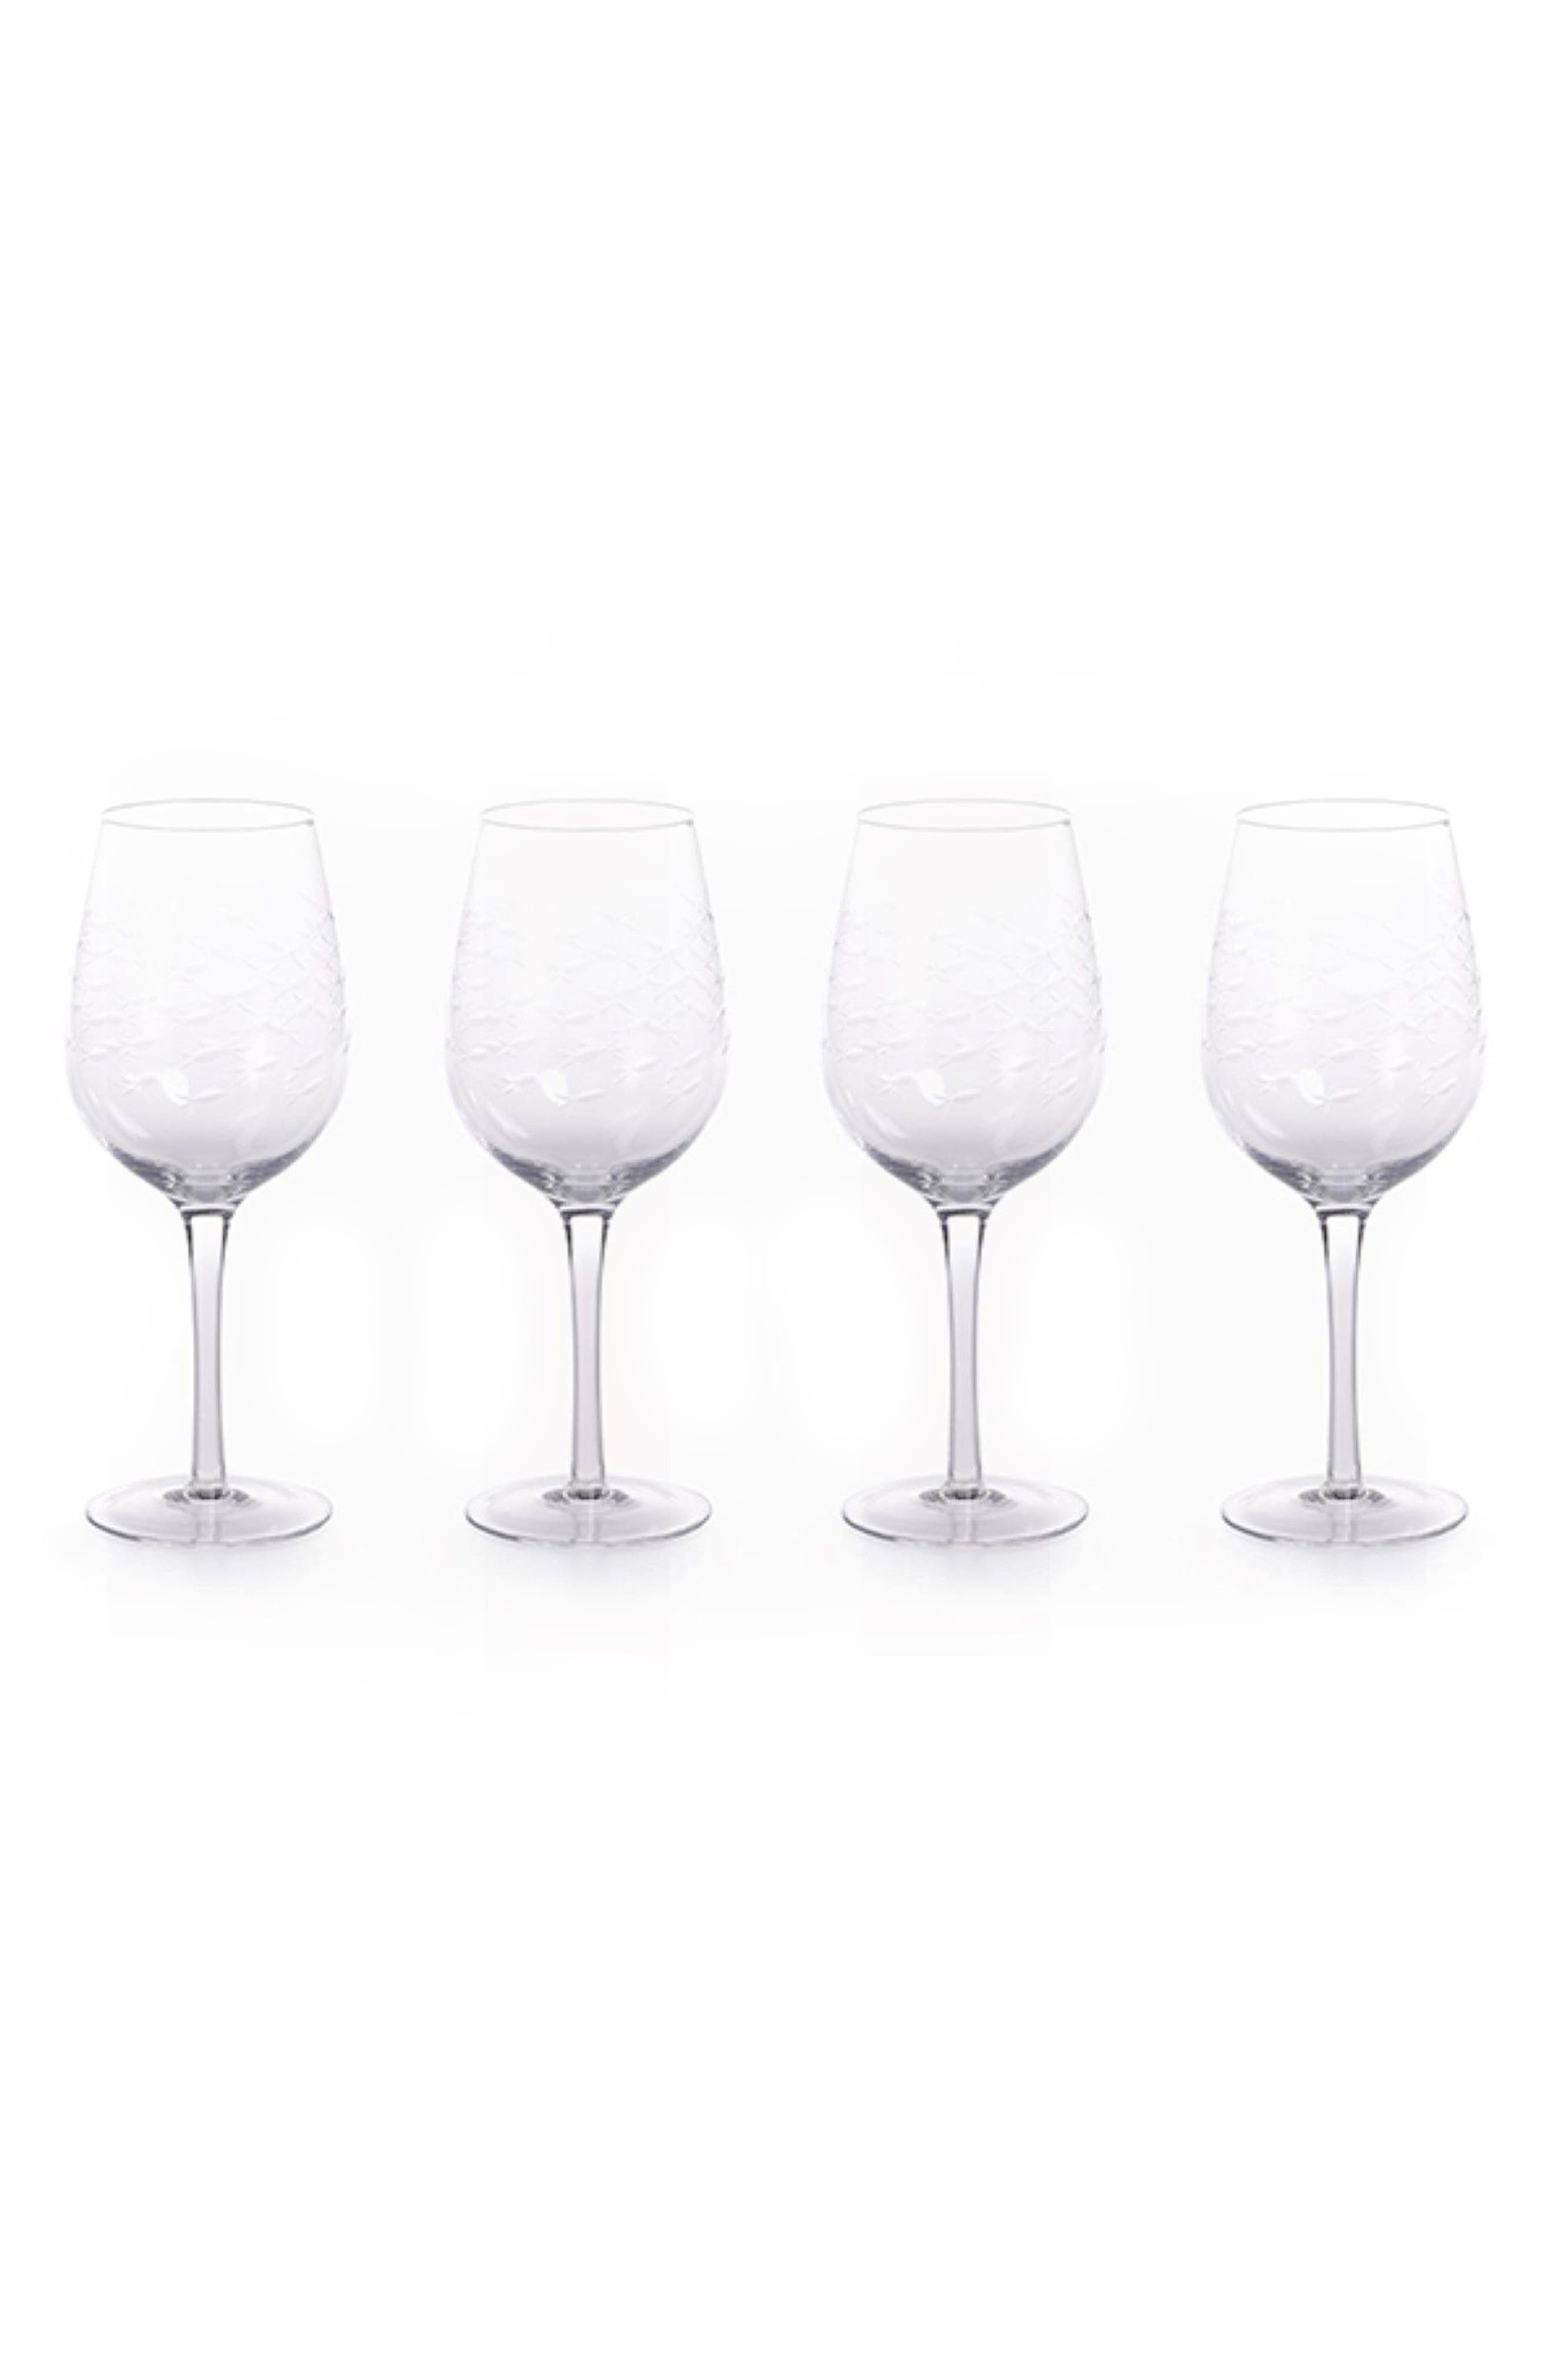 Keely Set of 4 Wine Glasses,                             Main thumbnail 1, color,                             100